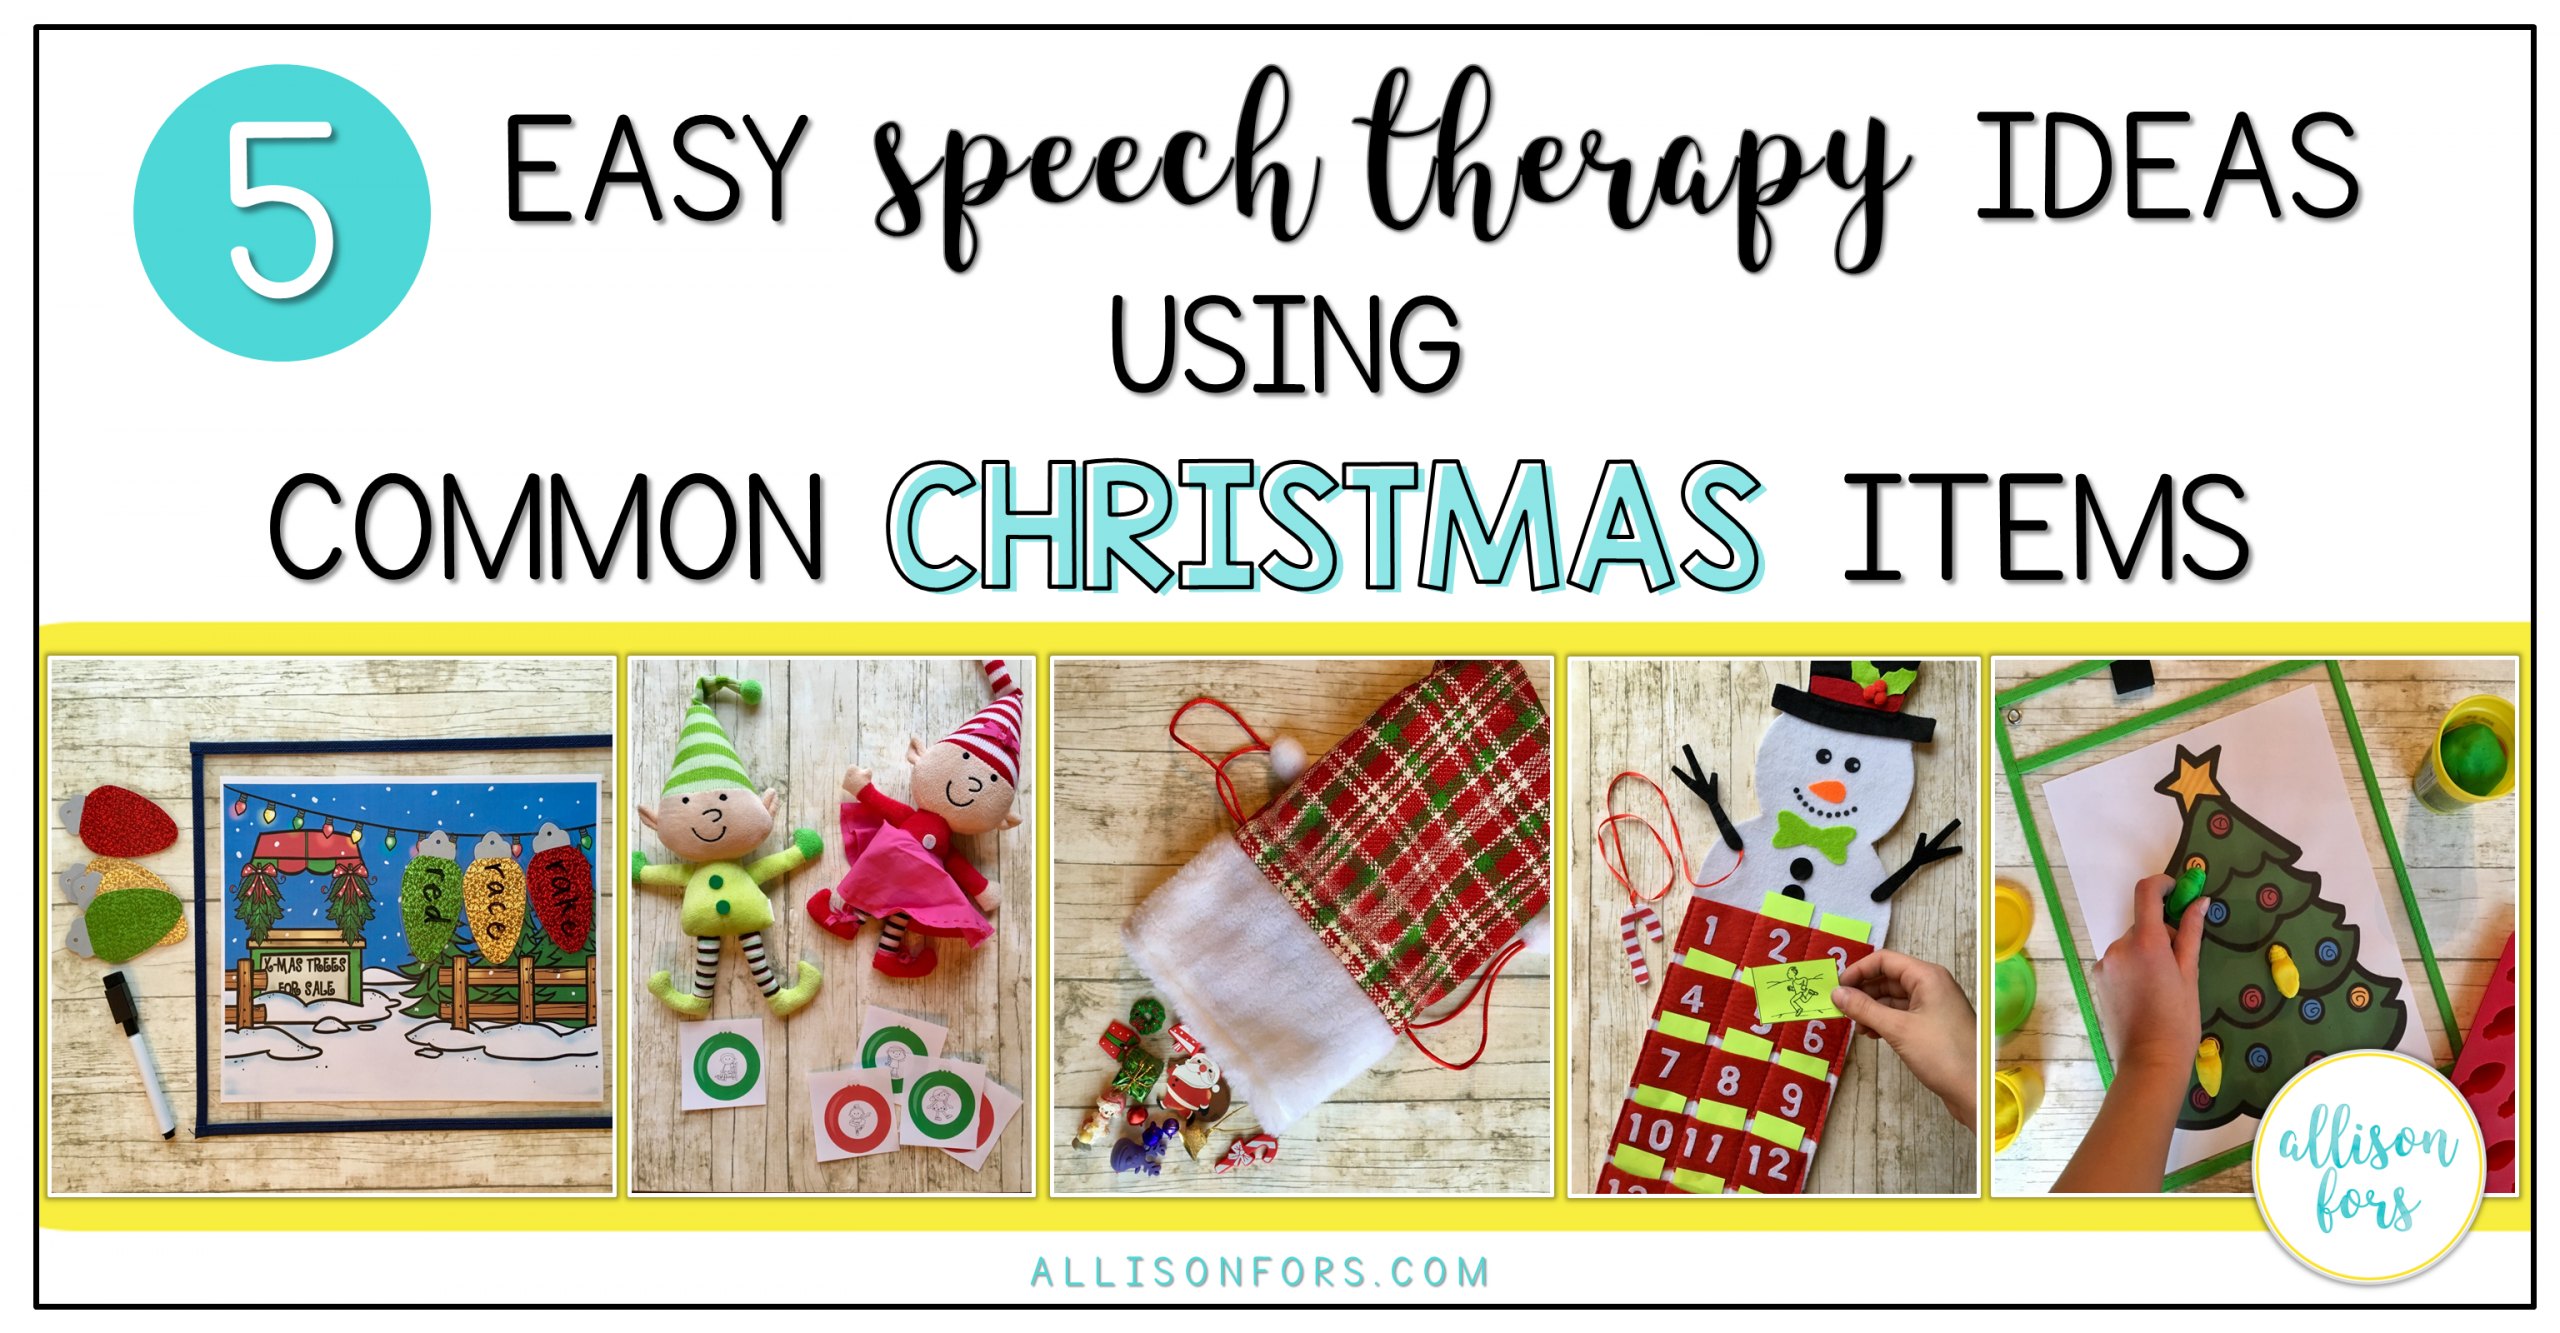 5 Easy Speech Therapy Ideas Using Common Christmas Items